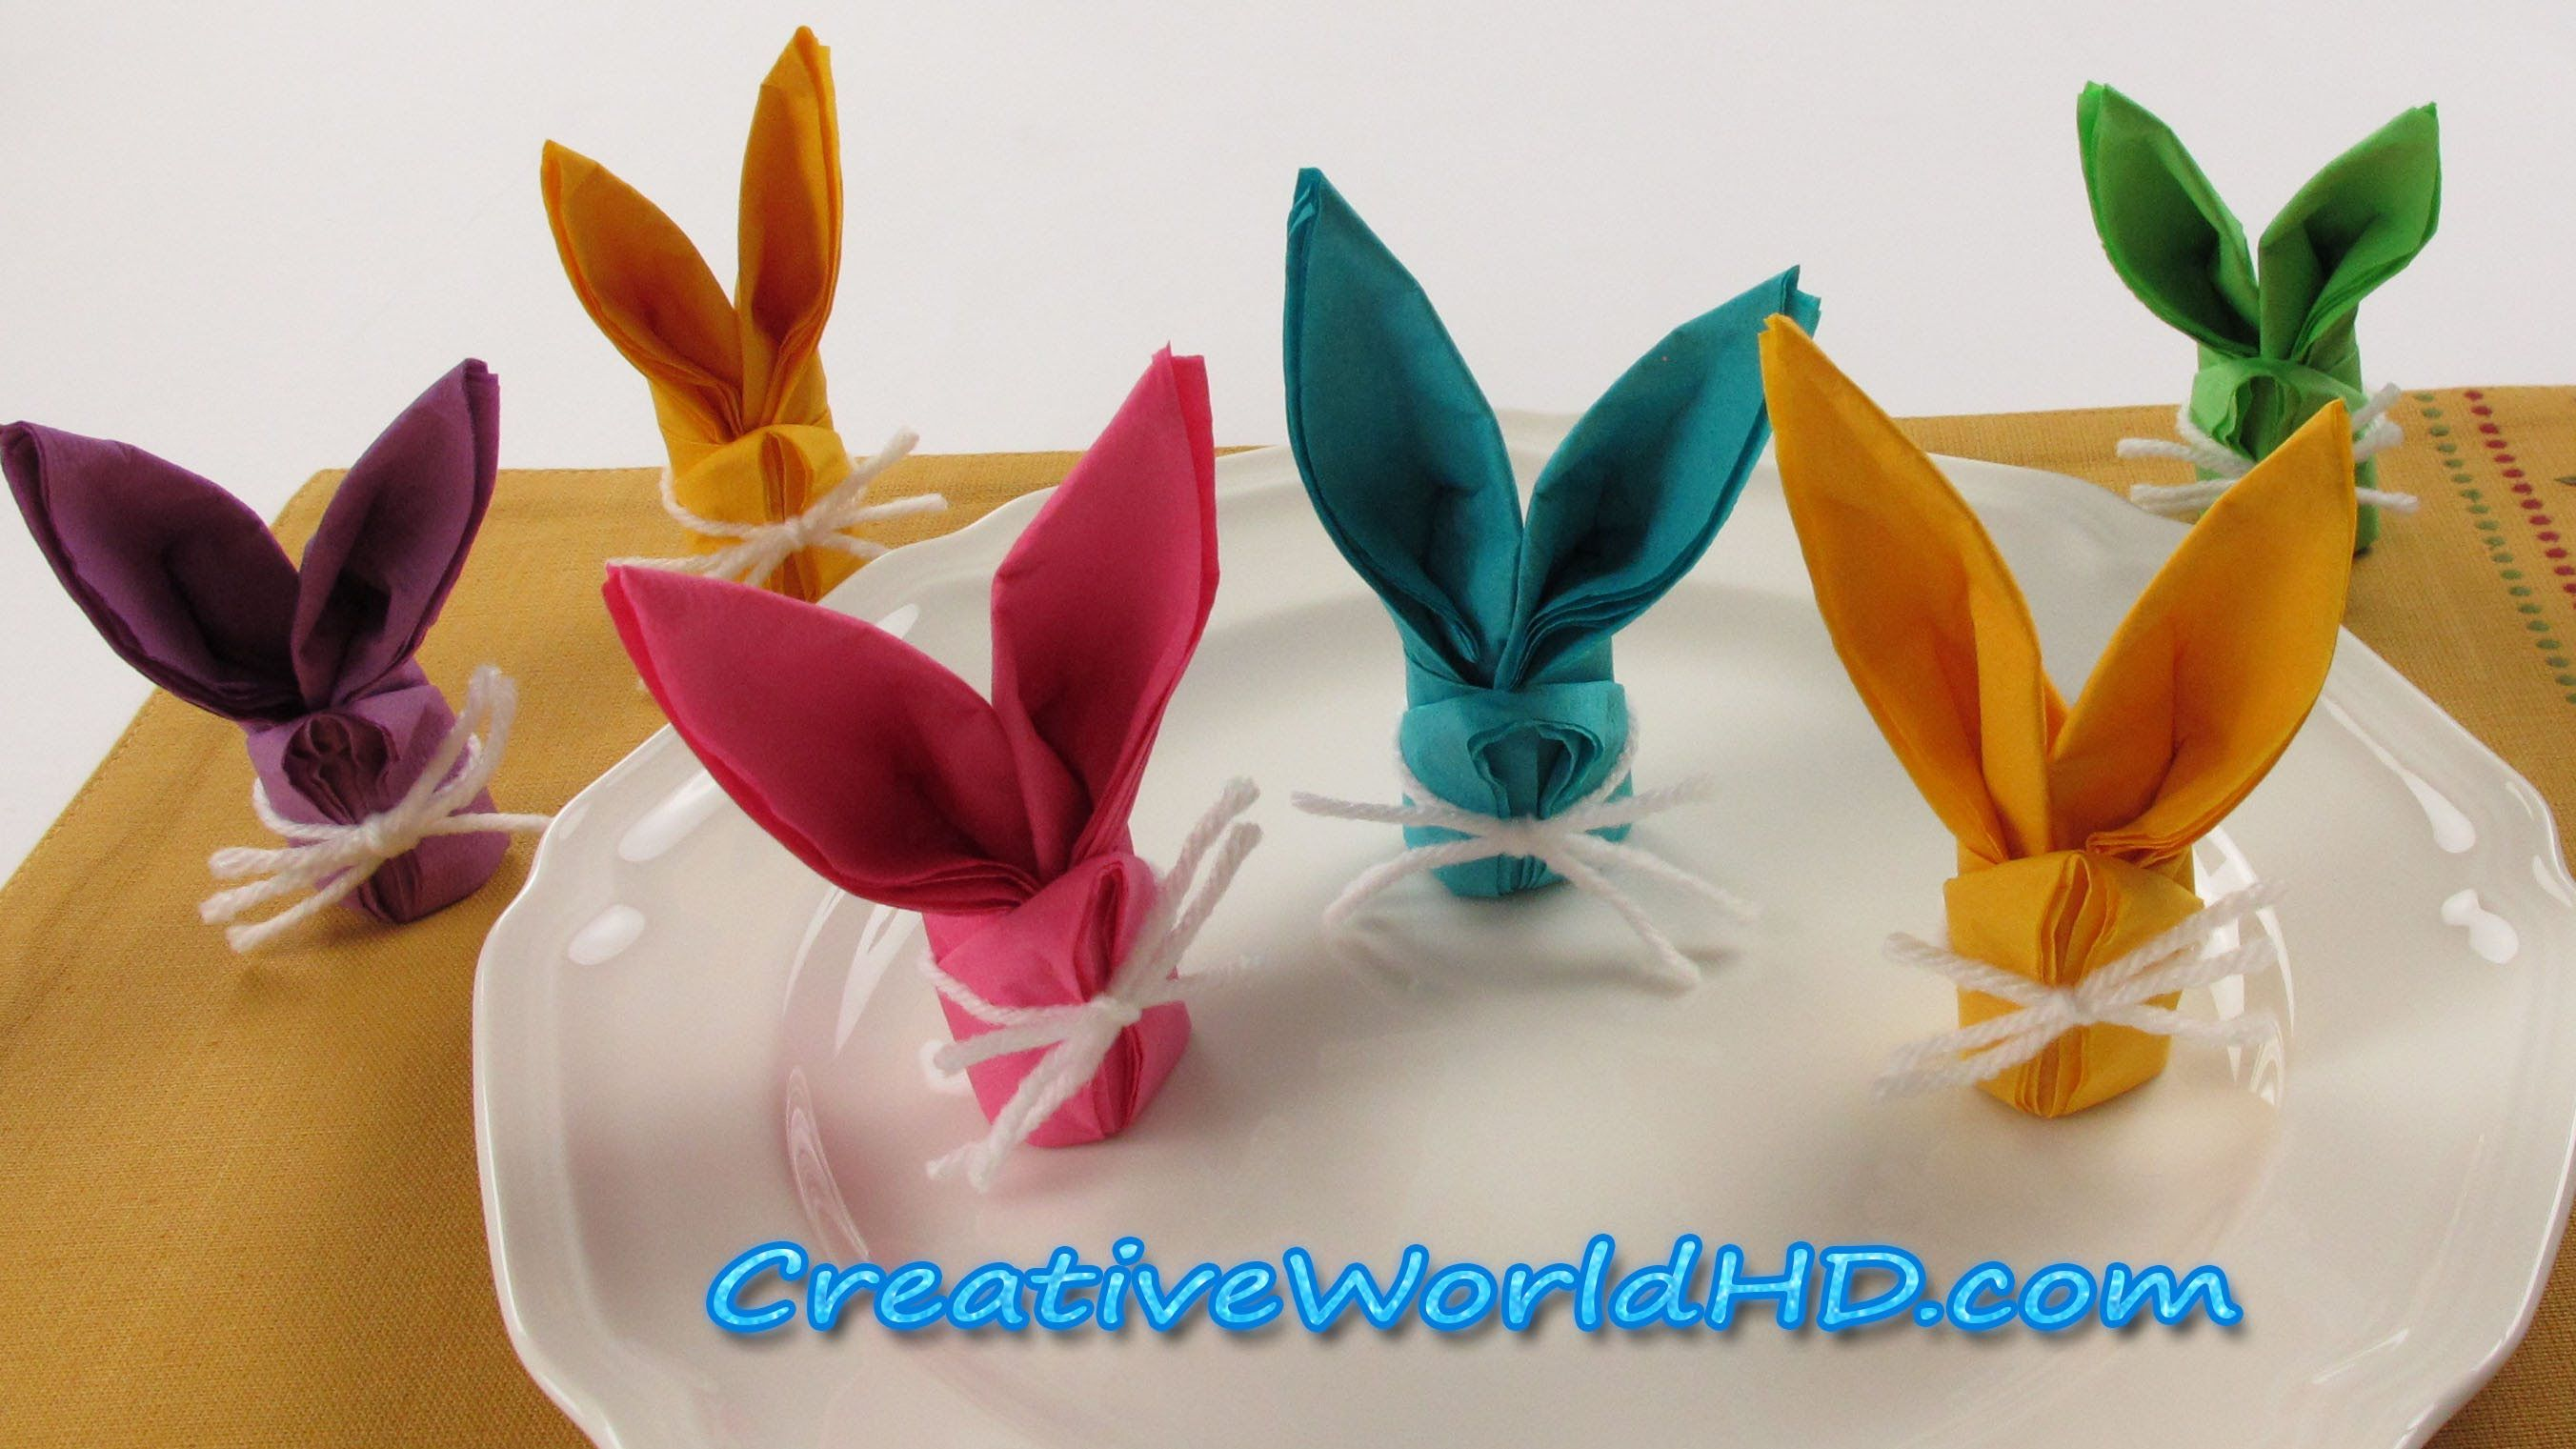 Diy Paper Crafts Bunny Rabbit Napkins Folding How To Easter Kids Origami Tutorial Easter Napkin Folding Bunny Napkin Fold Easter Napkins